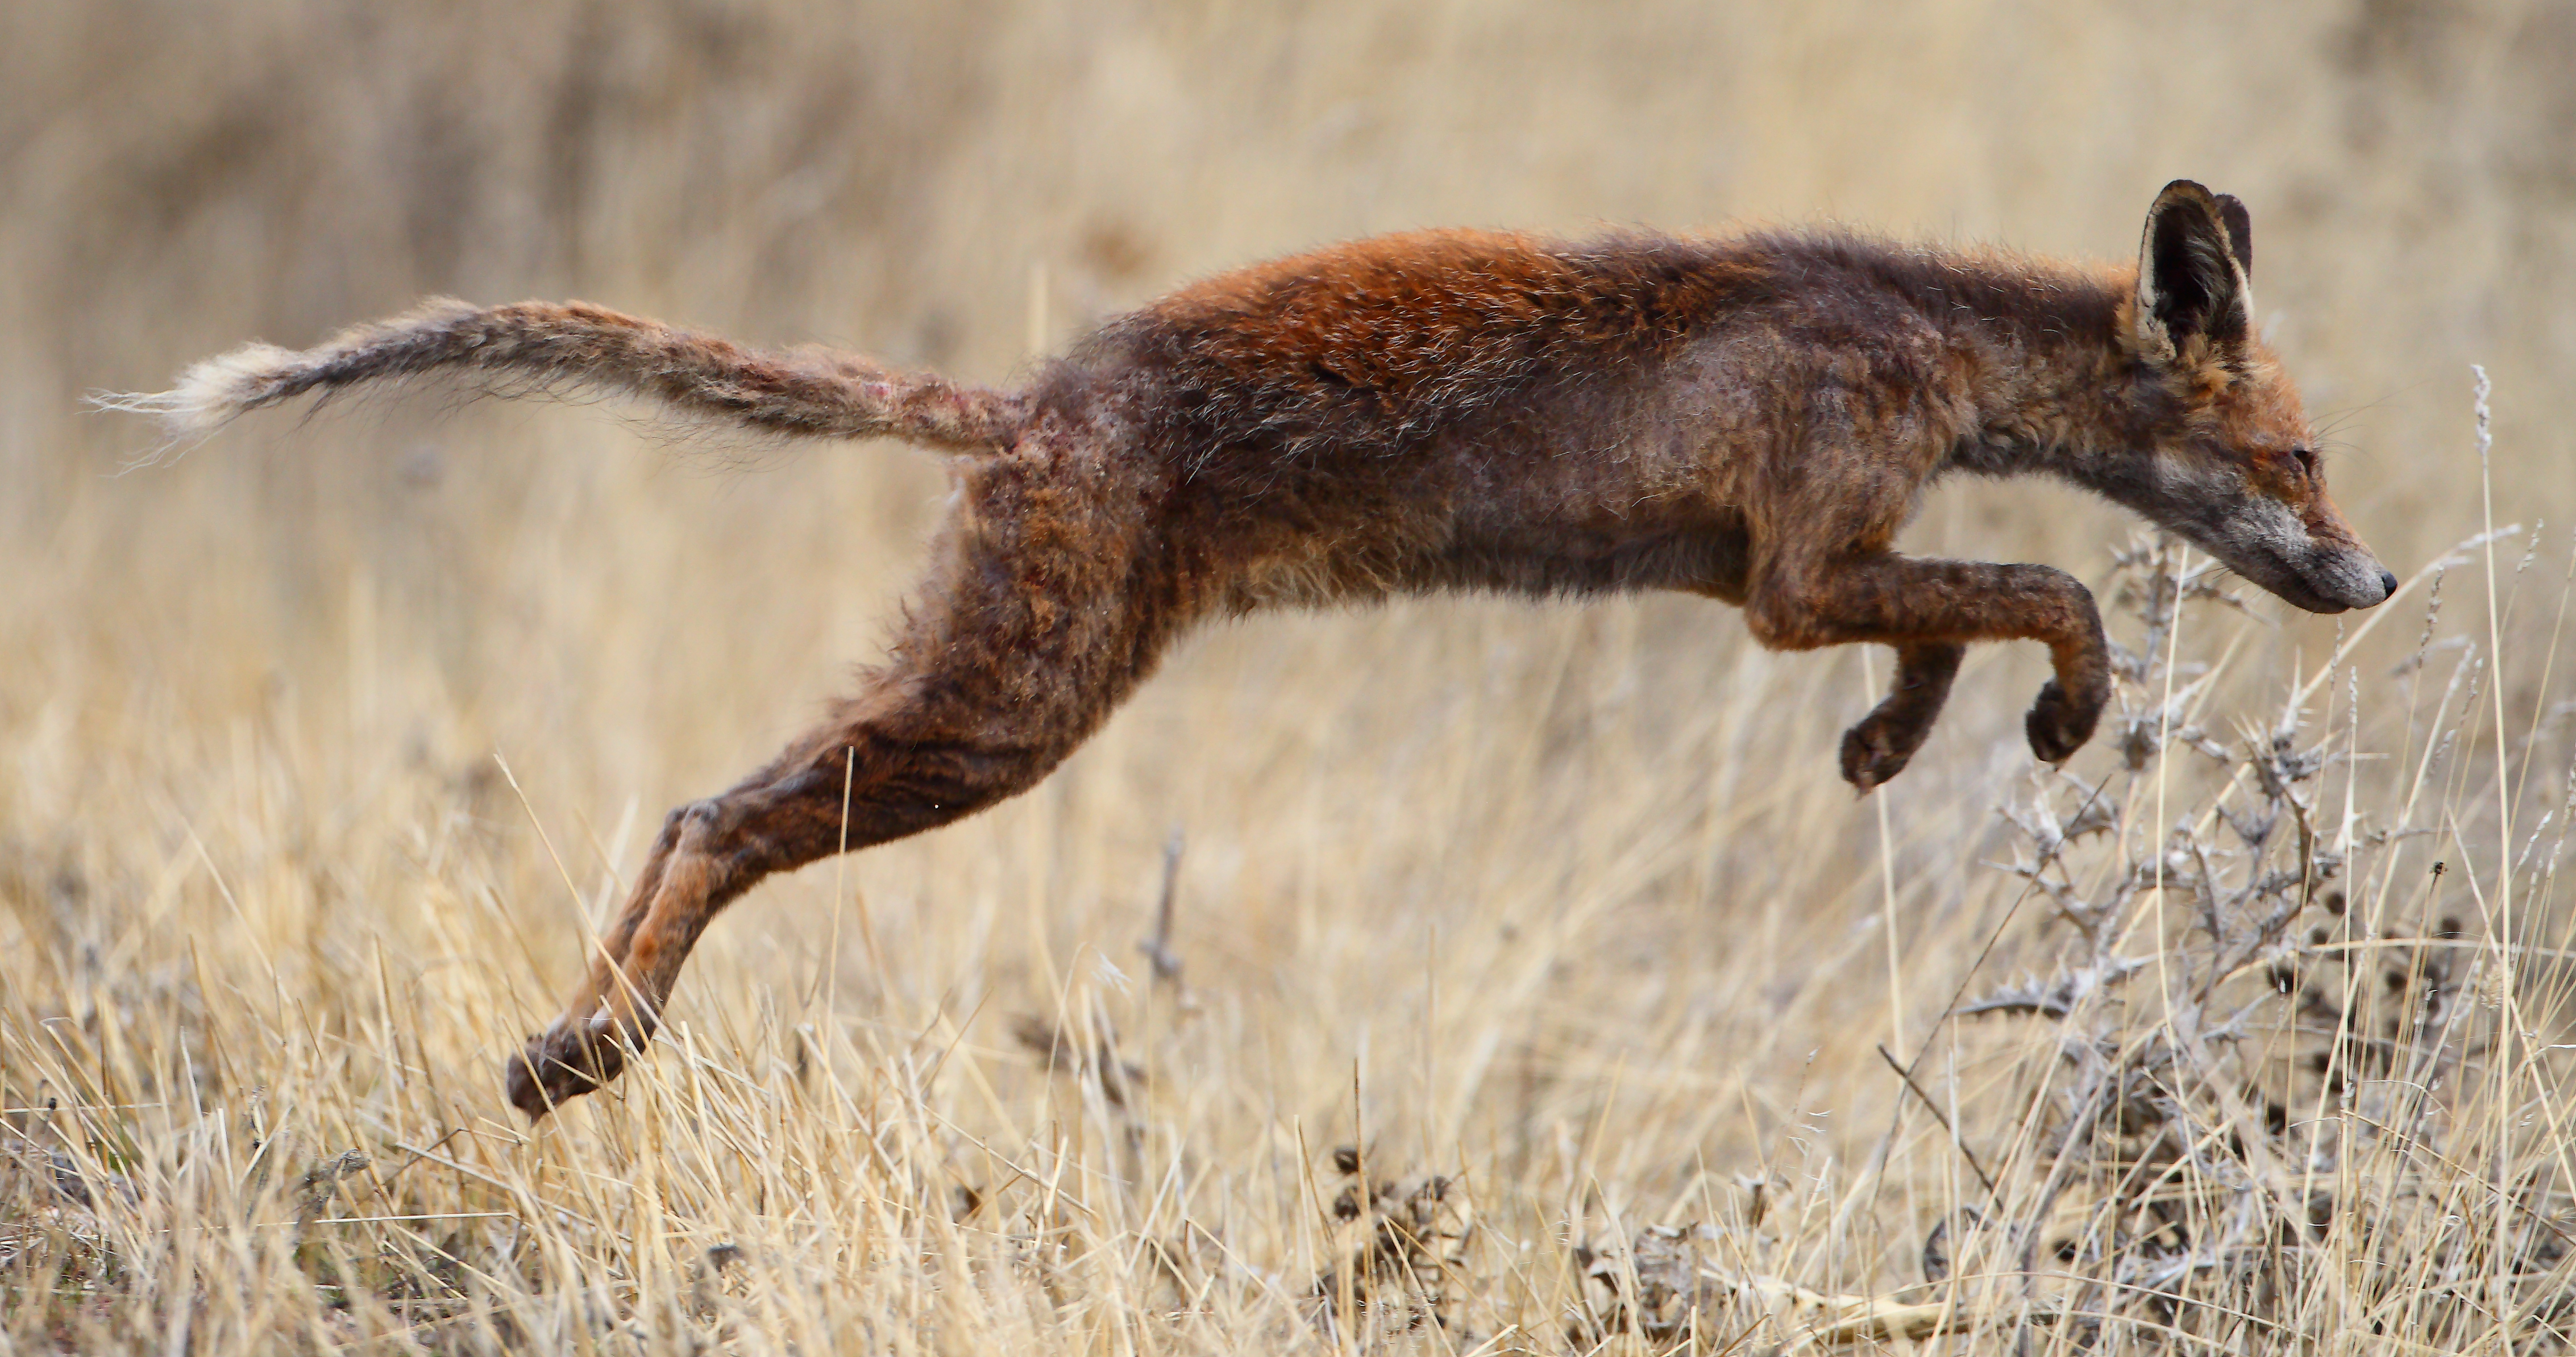 Red Fox, Zorro, affected by Sarcoptes scabiei (mange). Photo taken on December 3, 2011.